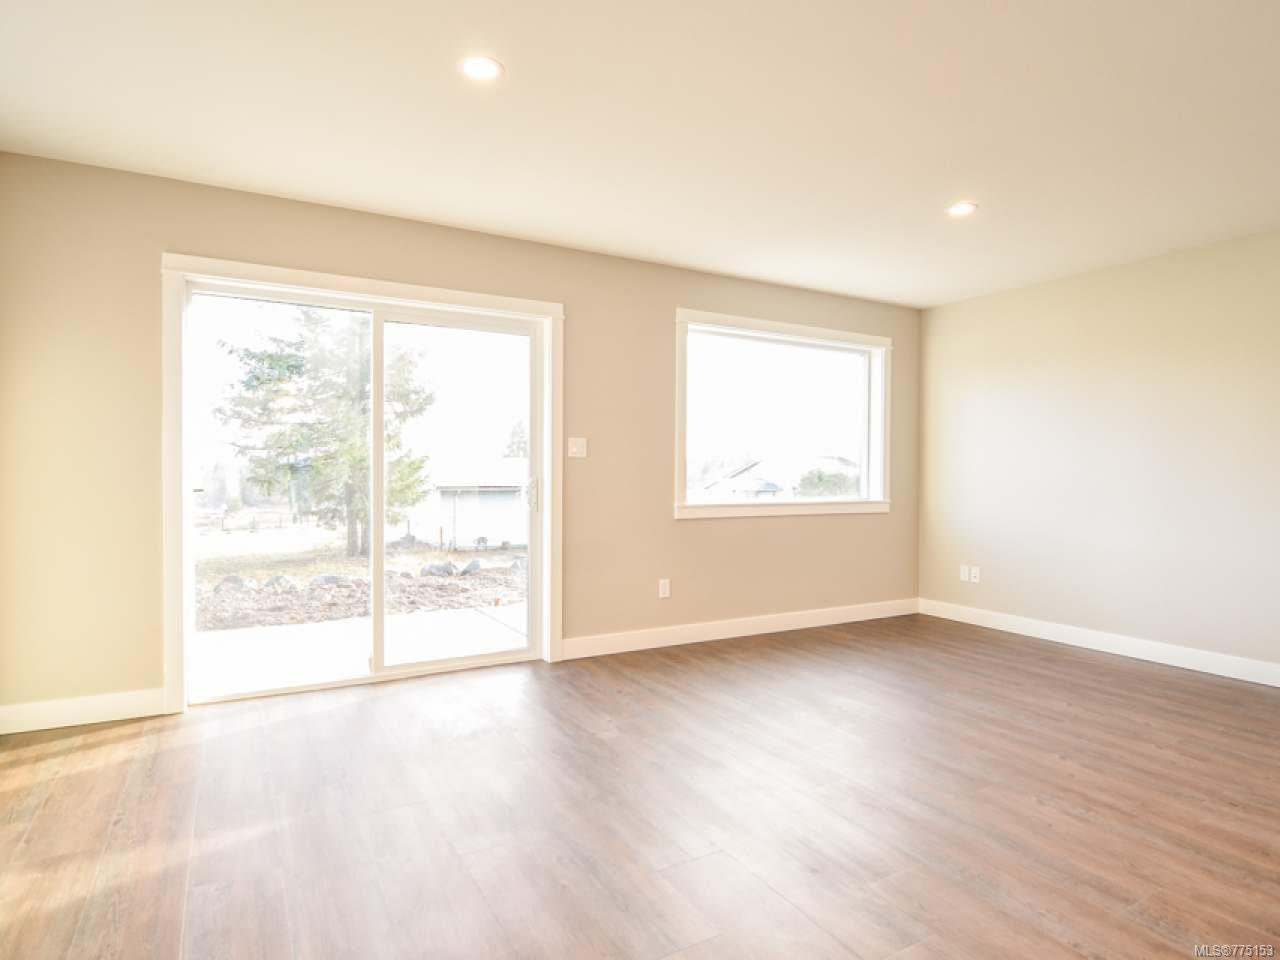 Photo 5: Photos: 2 595 Petersen Rd in CAMPBELL RIVER: CR Campbell River West Half Duplex for sale (Campbell River)  : MLS®# 775153